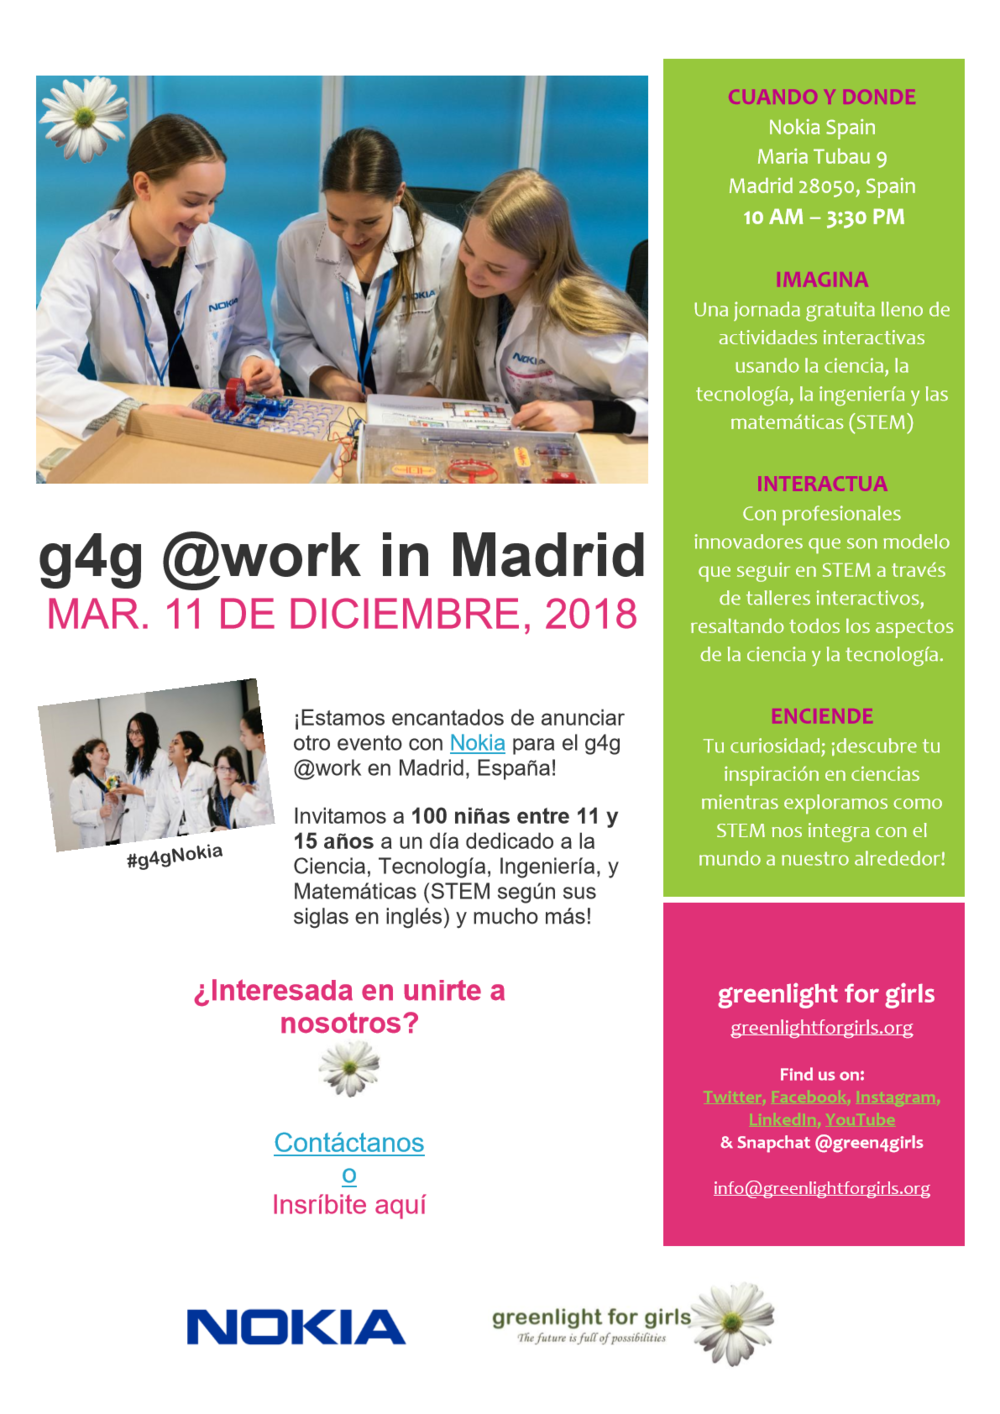 g4gatwork_nokia_madrid_2018_ESP.jpg